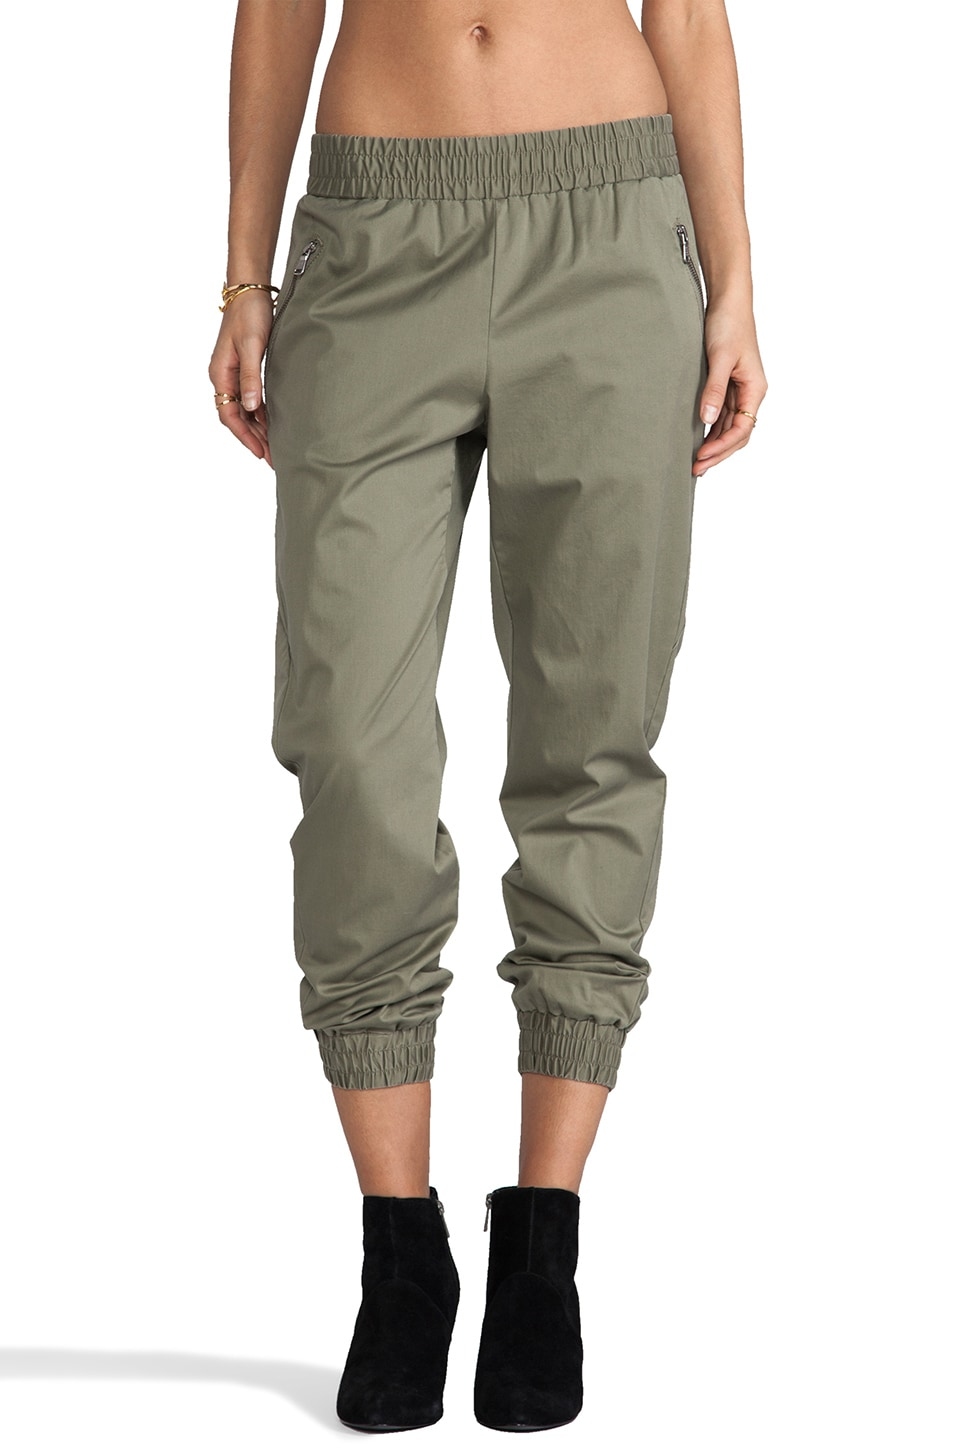 Marc by Marc Jacobs Samantha Twill Pants in Dusty Green